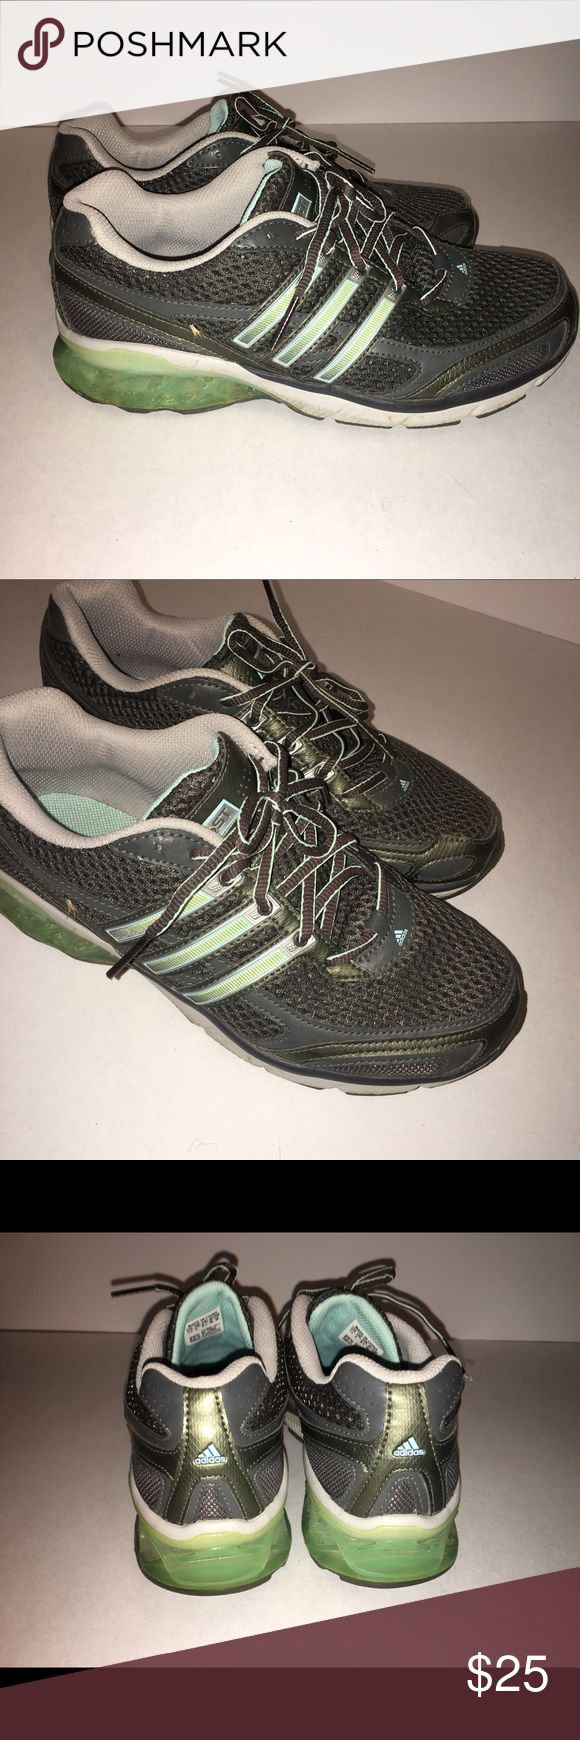 official photos 2e33b 79340 17 migliori idee su Adidas Boost Running Shoes su Pinterest